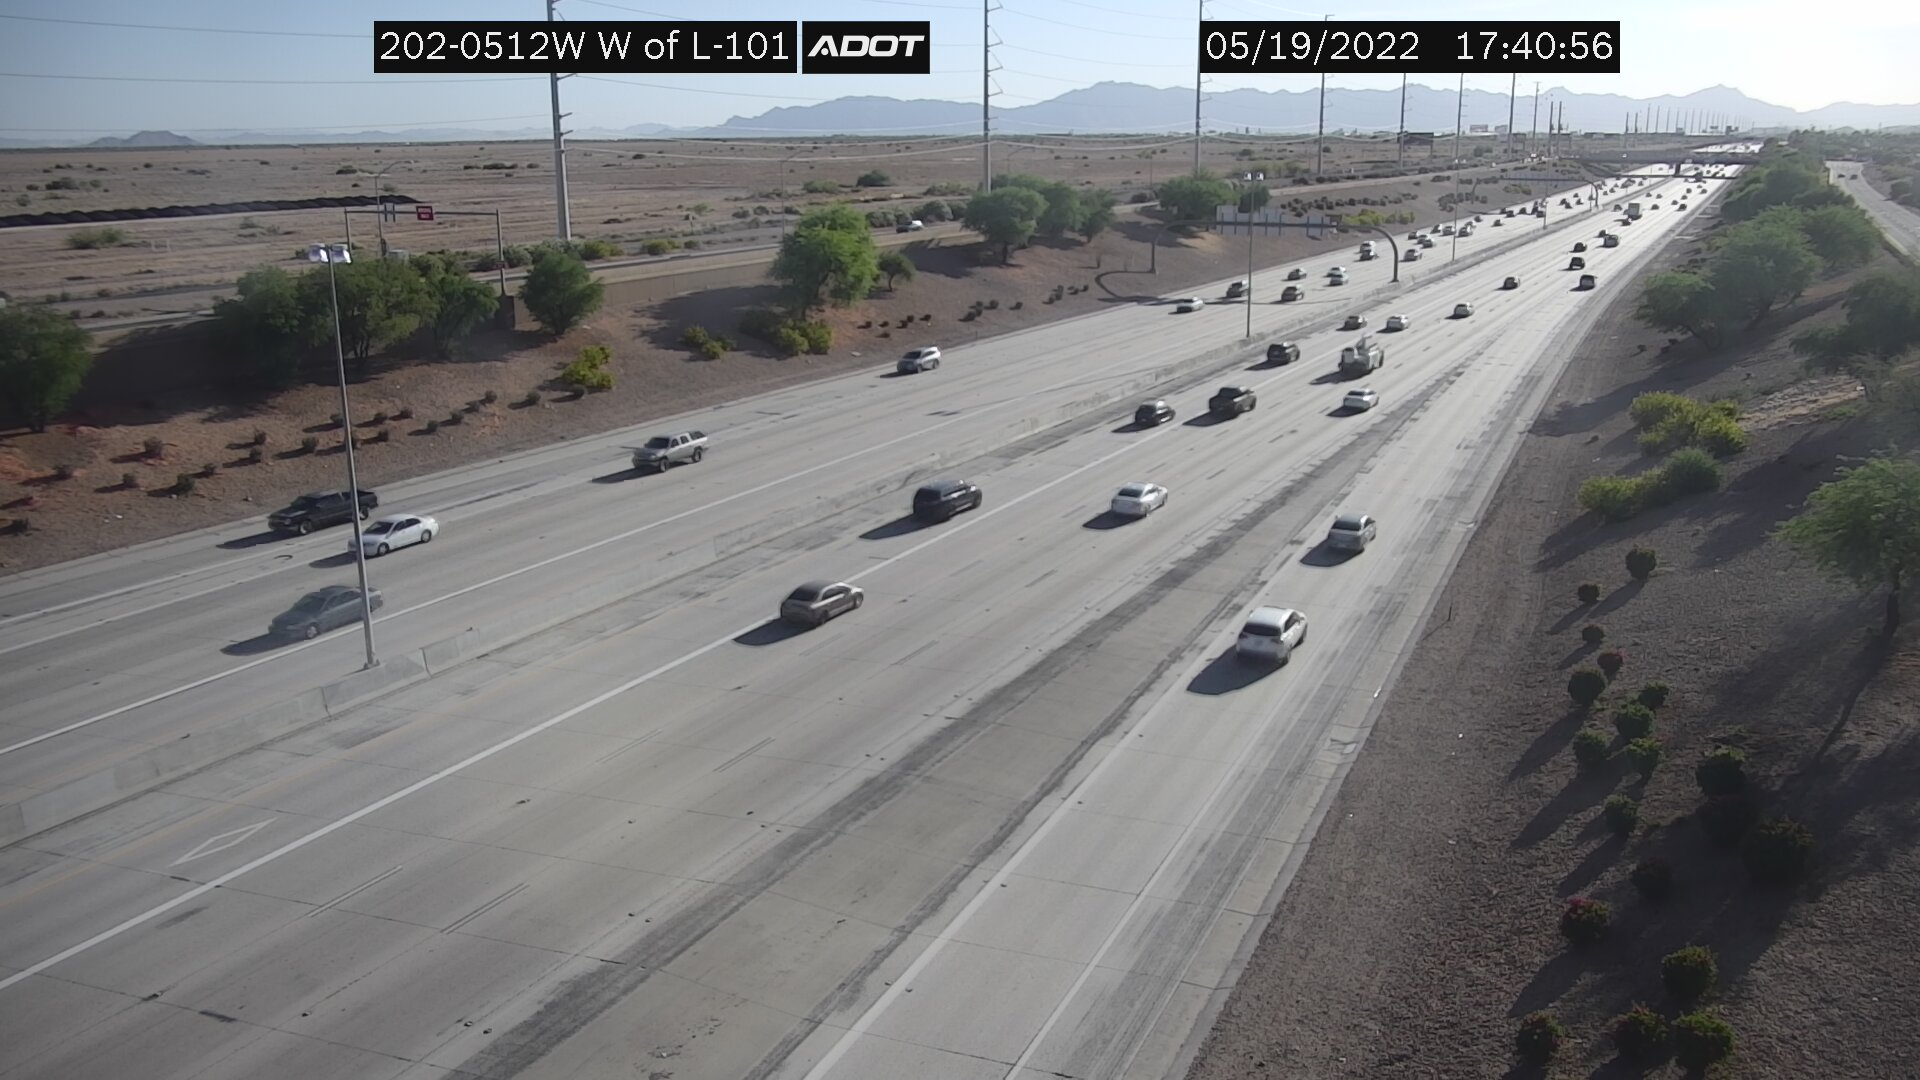 W of L-101 WB (L202) (222) - Phoenix and Arizona